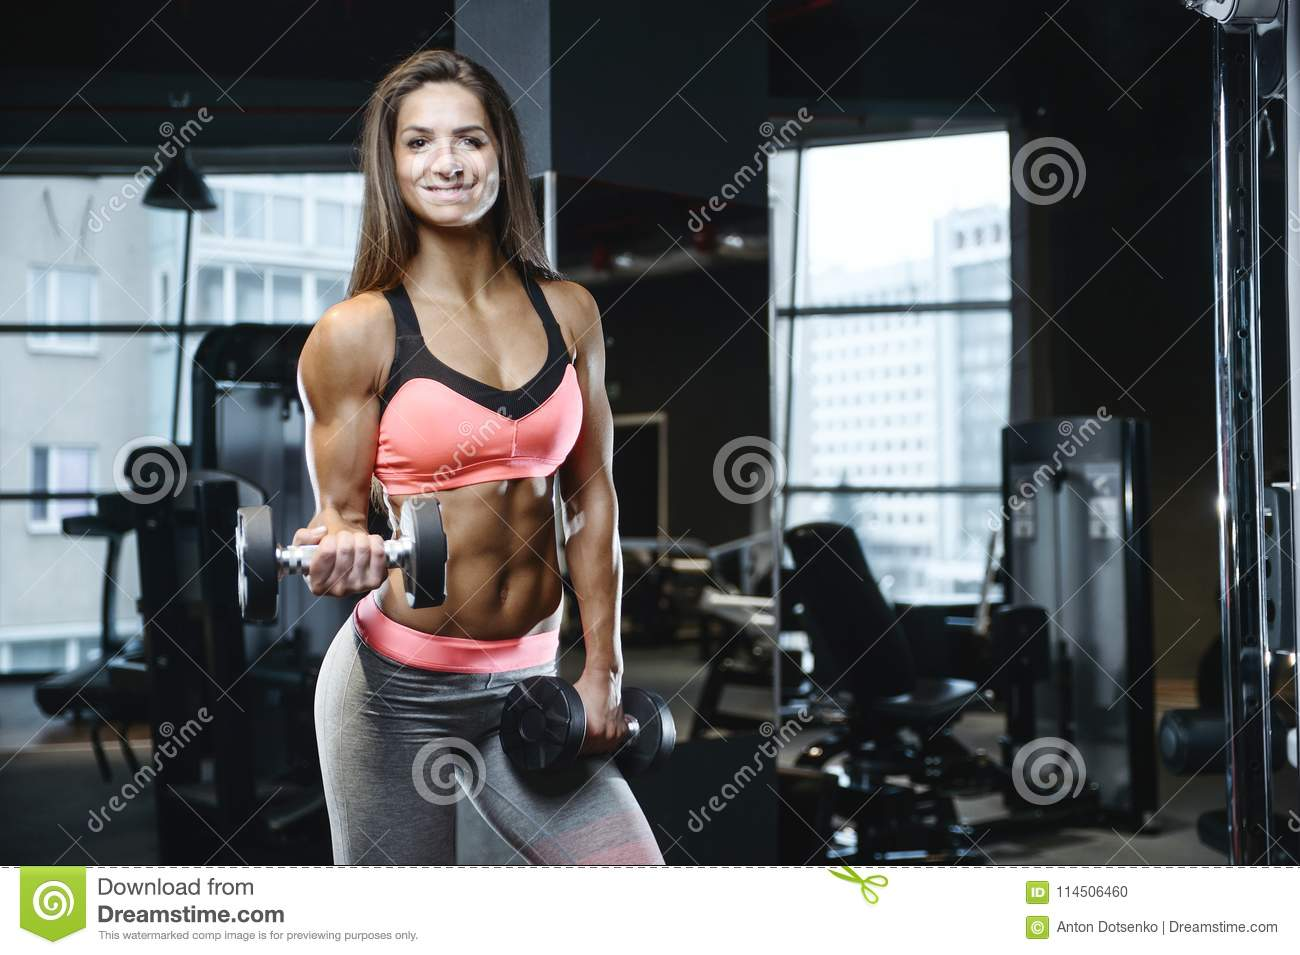 7723aa76b2361 Beautiful strong athletic muscular young caucasian fitness girl workout  training in the gym on diet pumping up abs muscles and posing bodybuilding  health ...